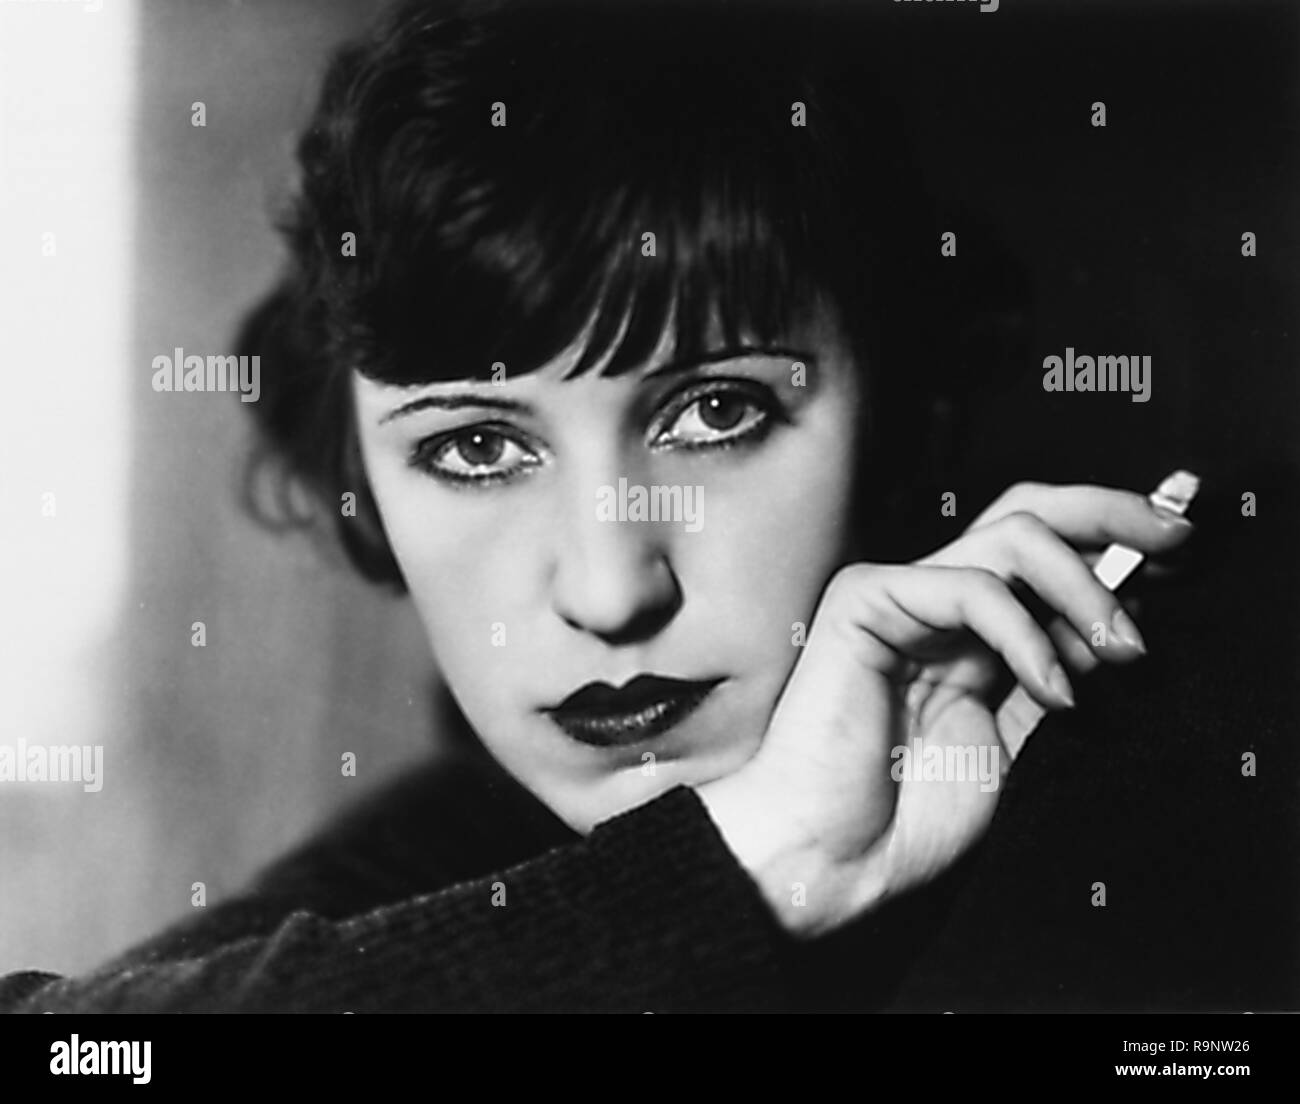 Black and white, headshot, portrait photograph, of Austrian-American actress, singer, and diseuse Lotte Lenya, facing the camera, with a neutral expression on her face, leaning her chin on her wrist, and holding a lit cigarette in her hand, photographed in Berlin, Germany, circa 1928, by the German-American portrait photographer Lotte Jacobi (1896-1990), 1928. () - Stock Image